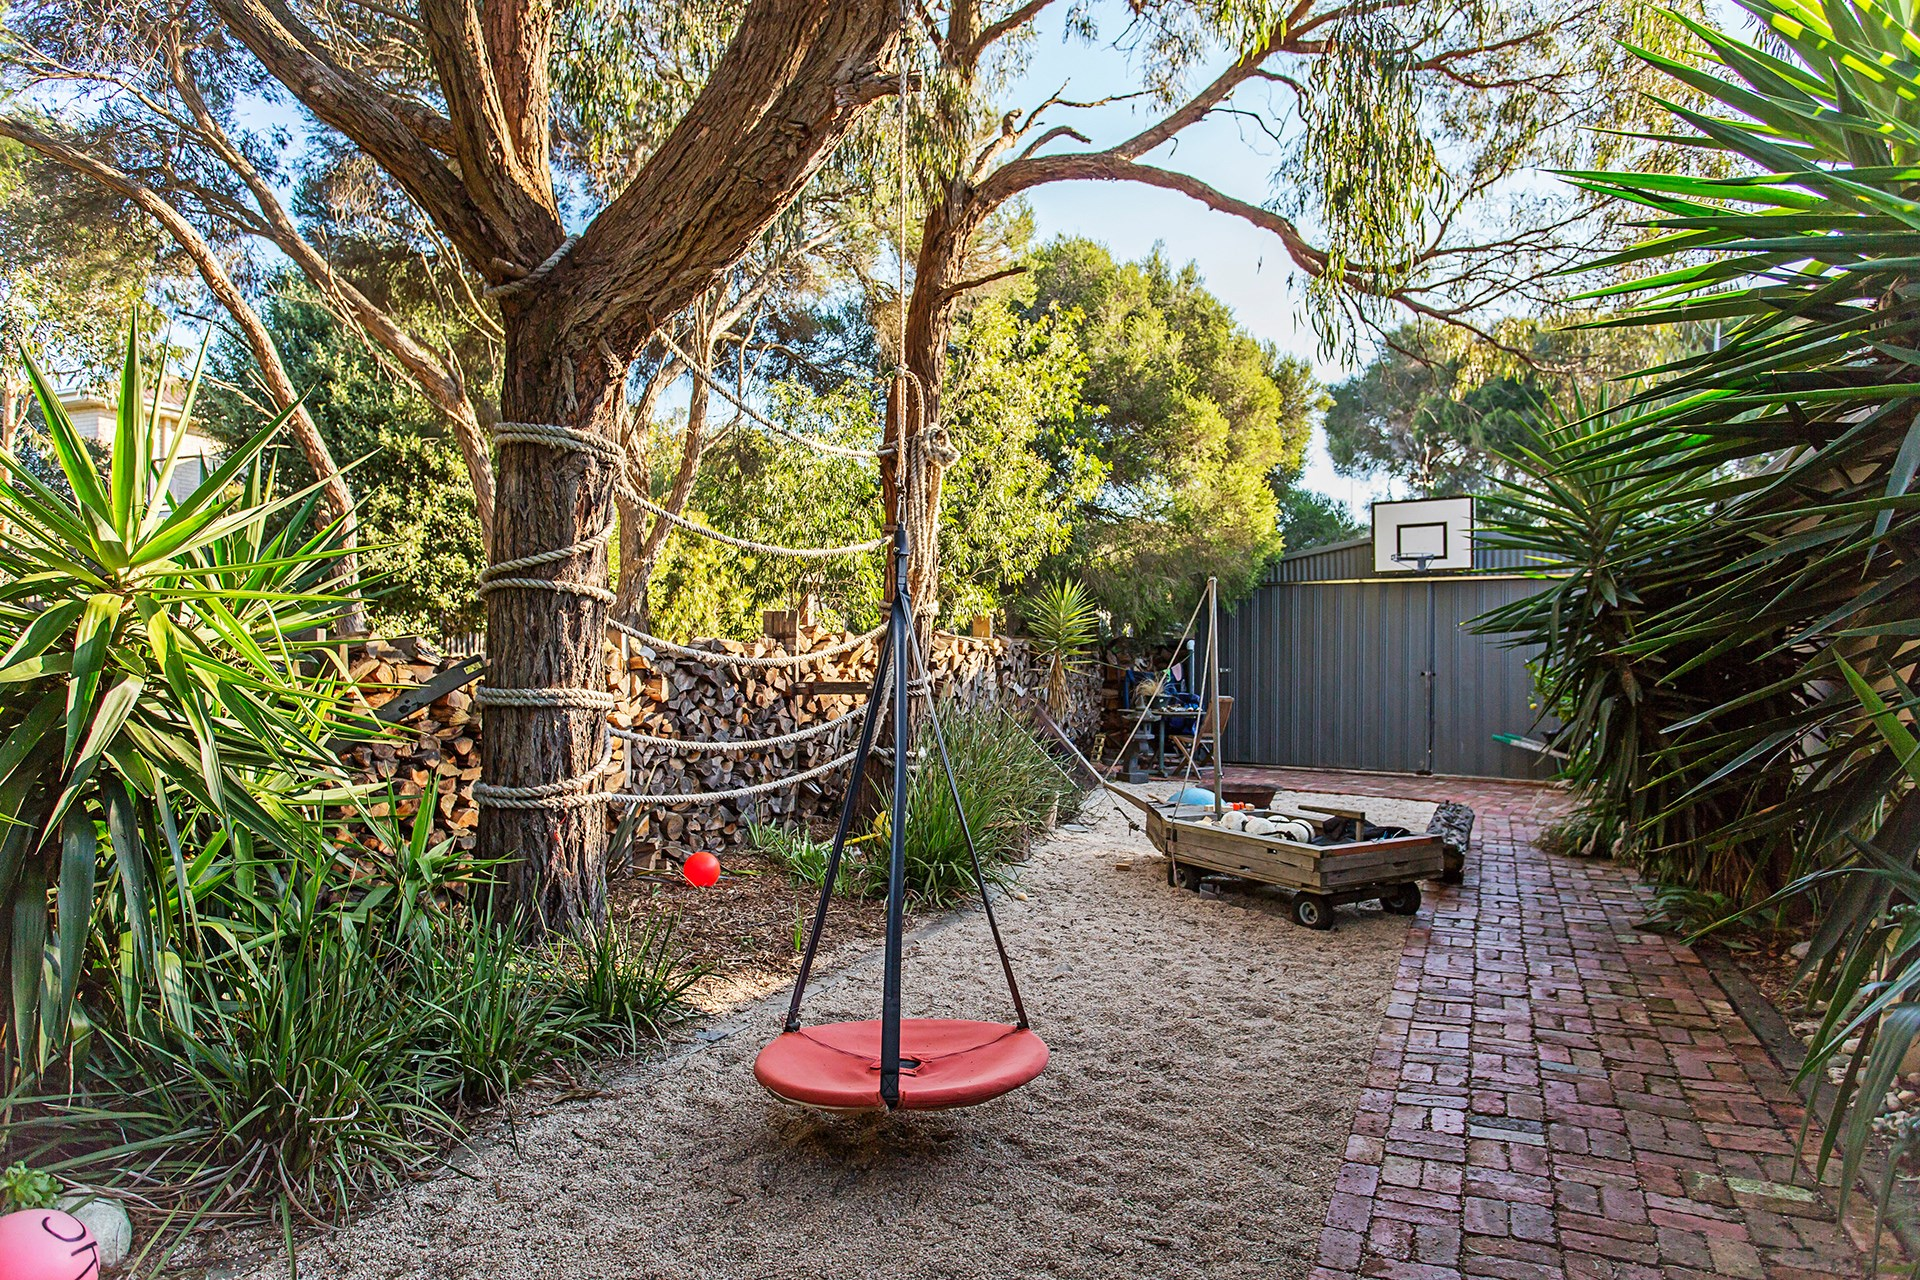 """**Lawn is not a necessity** – even if you have kids. Decking, paving, gravel and sand are all viable alternatives that will save you from mowing. [Take a tour of this kid-friendly homemade garden](http://www.homestolove.com.au/gallery-how-to-create-a-homemade-garden-2279